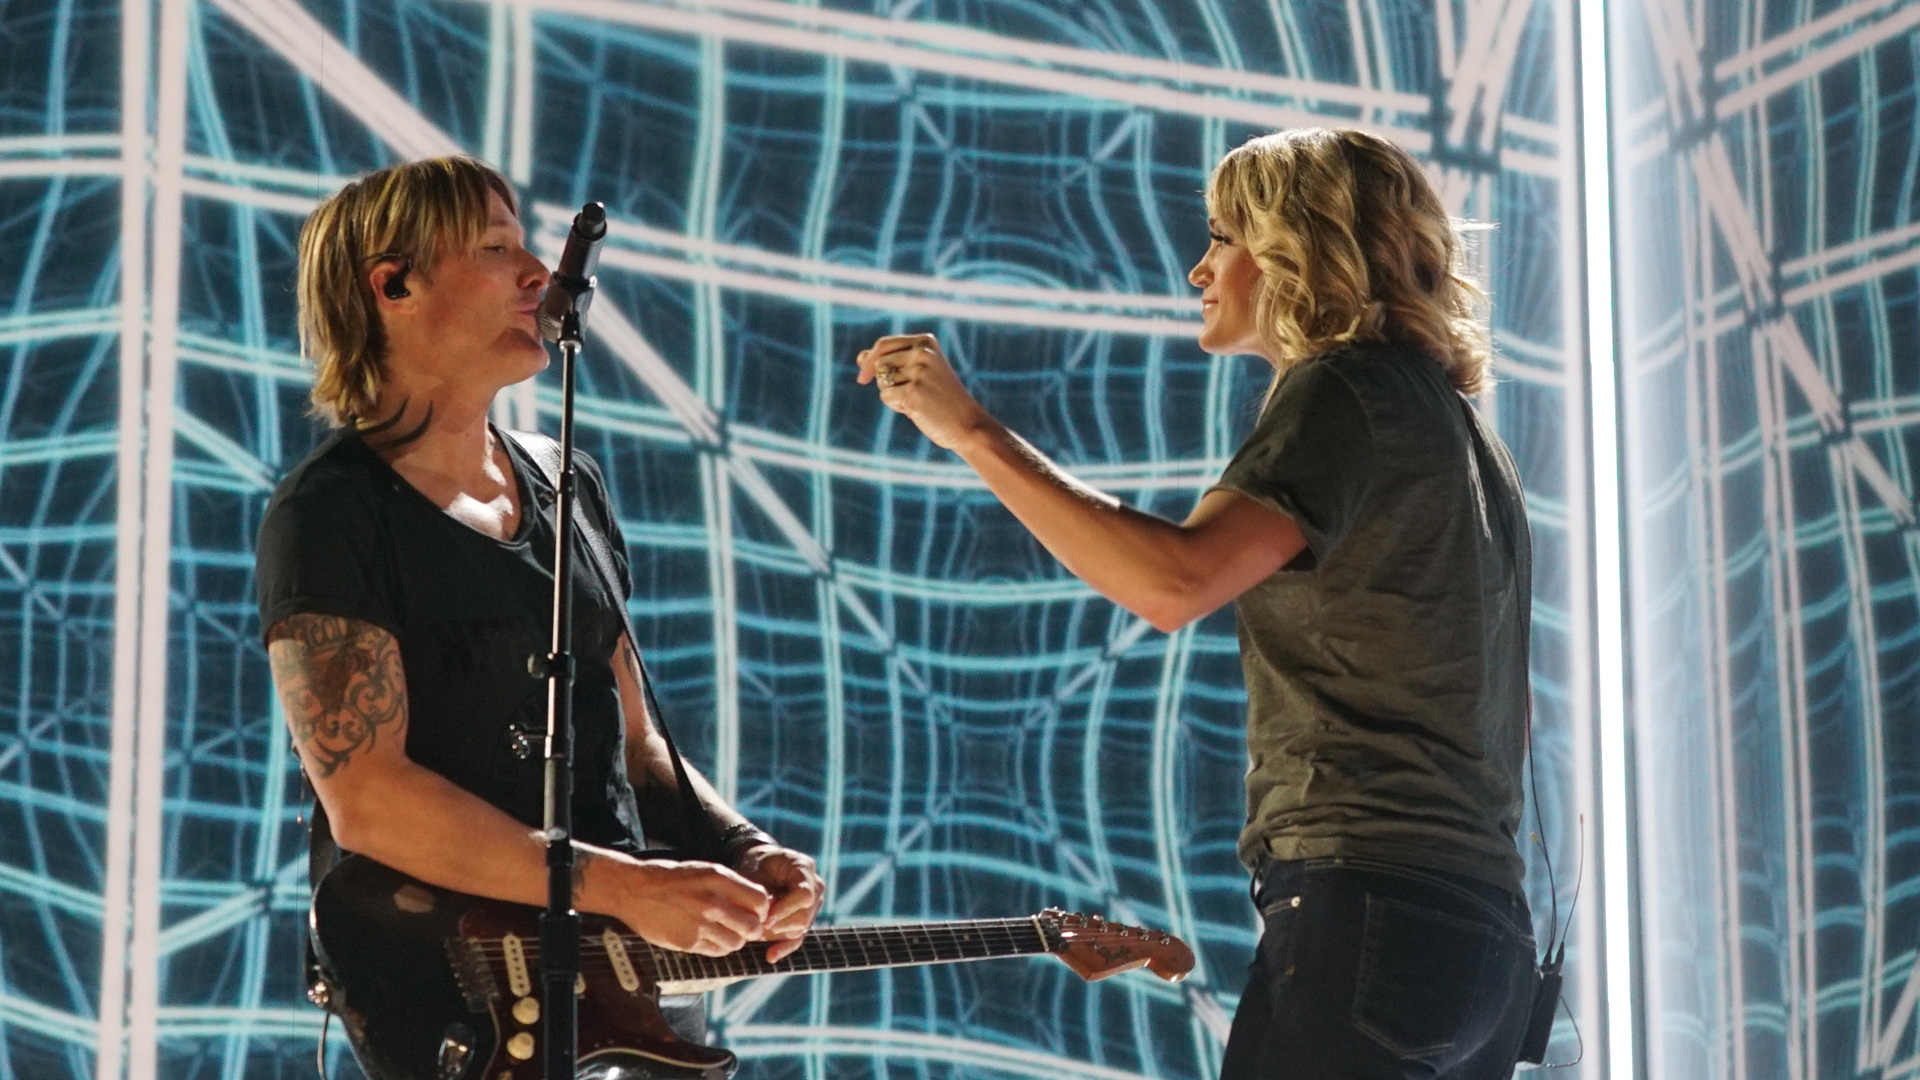 Current GRAMMY nominees Keith Urban and Carrie Underwood compare notes during rehearsals.